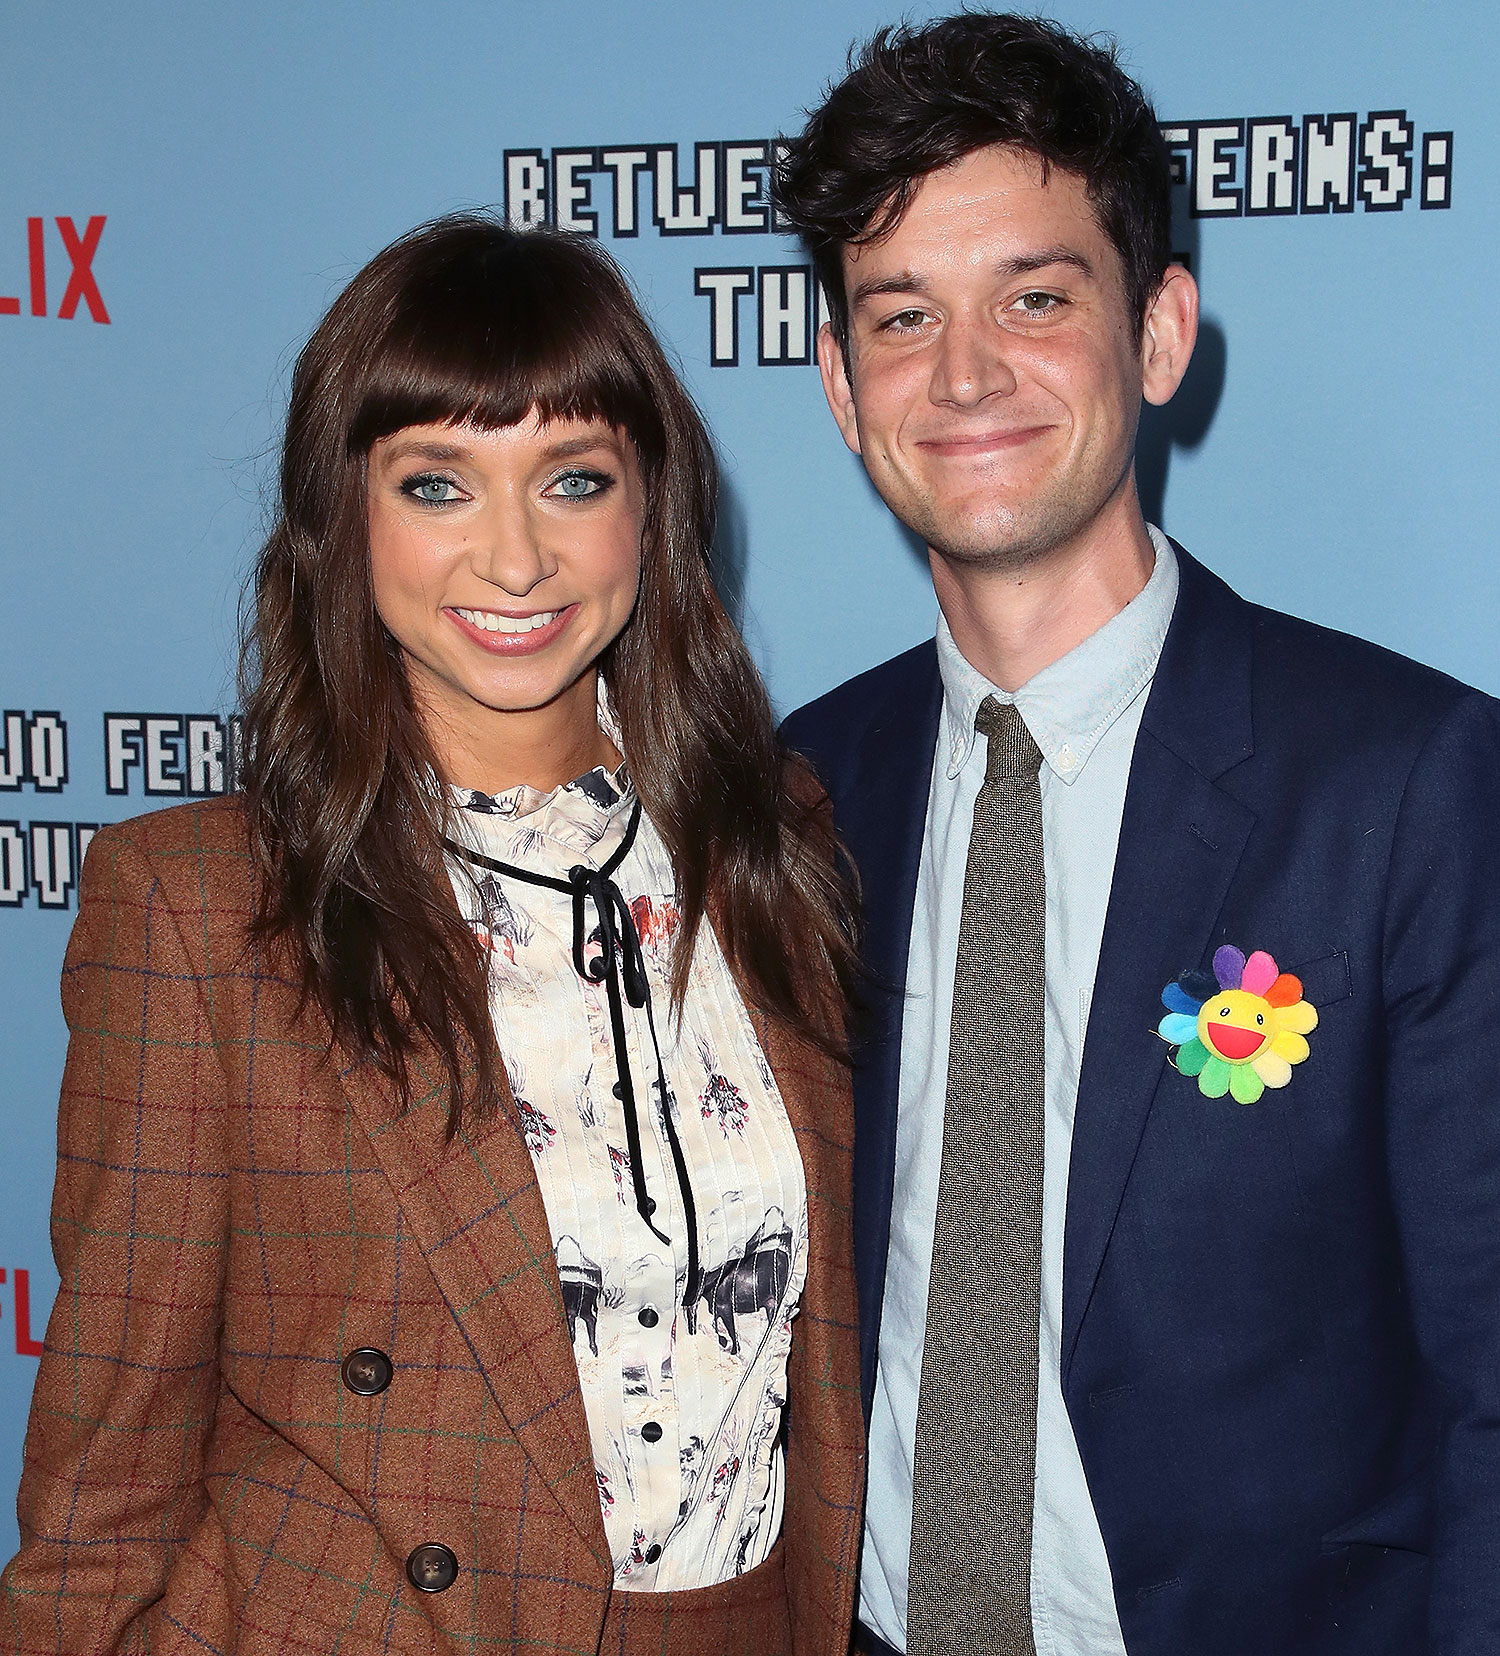 Lauren Lapkus and Mike Castle